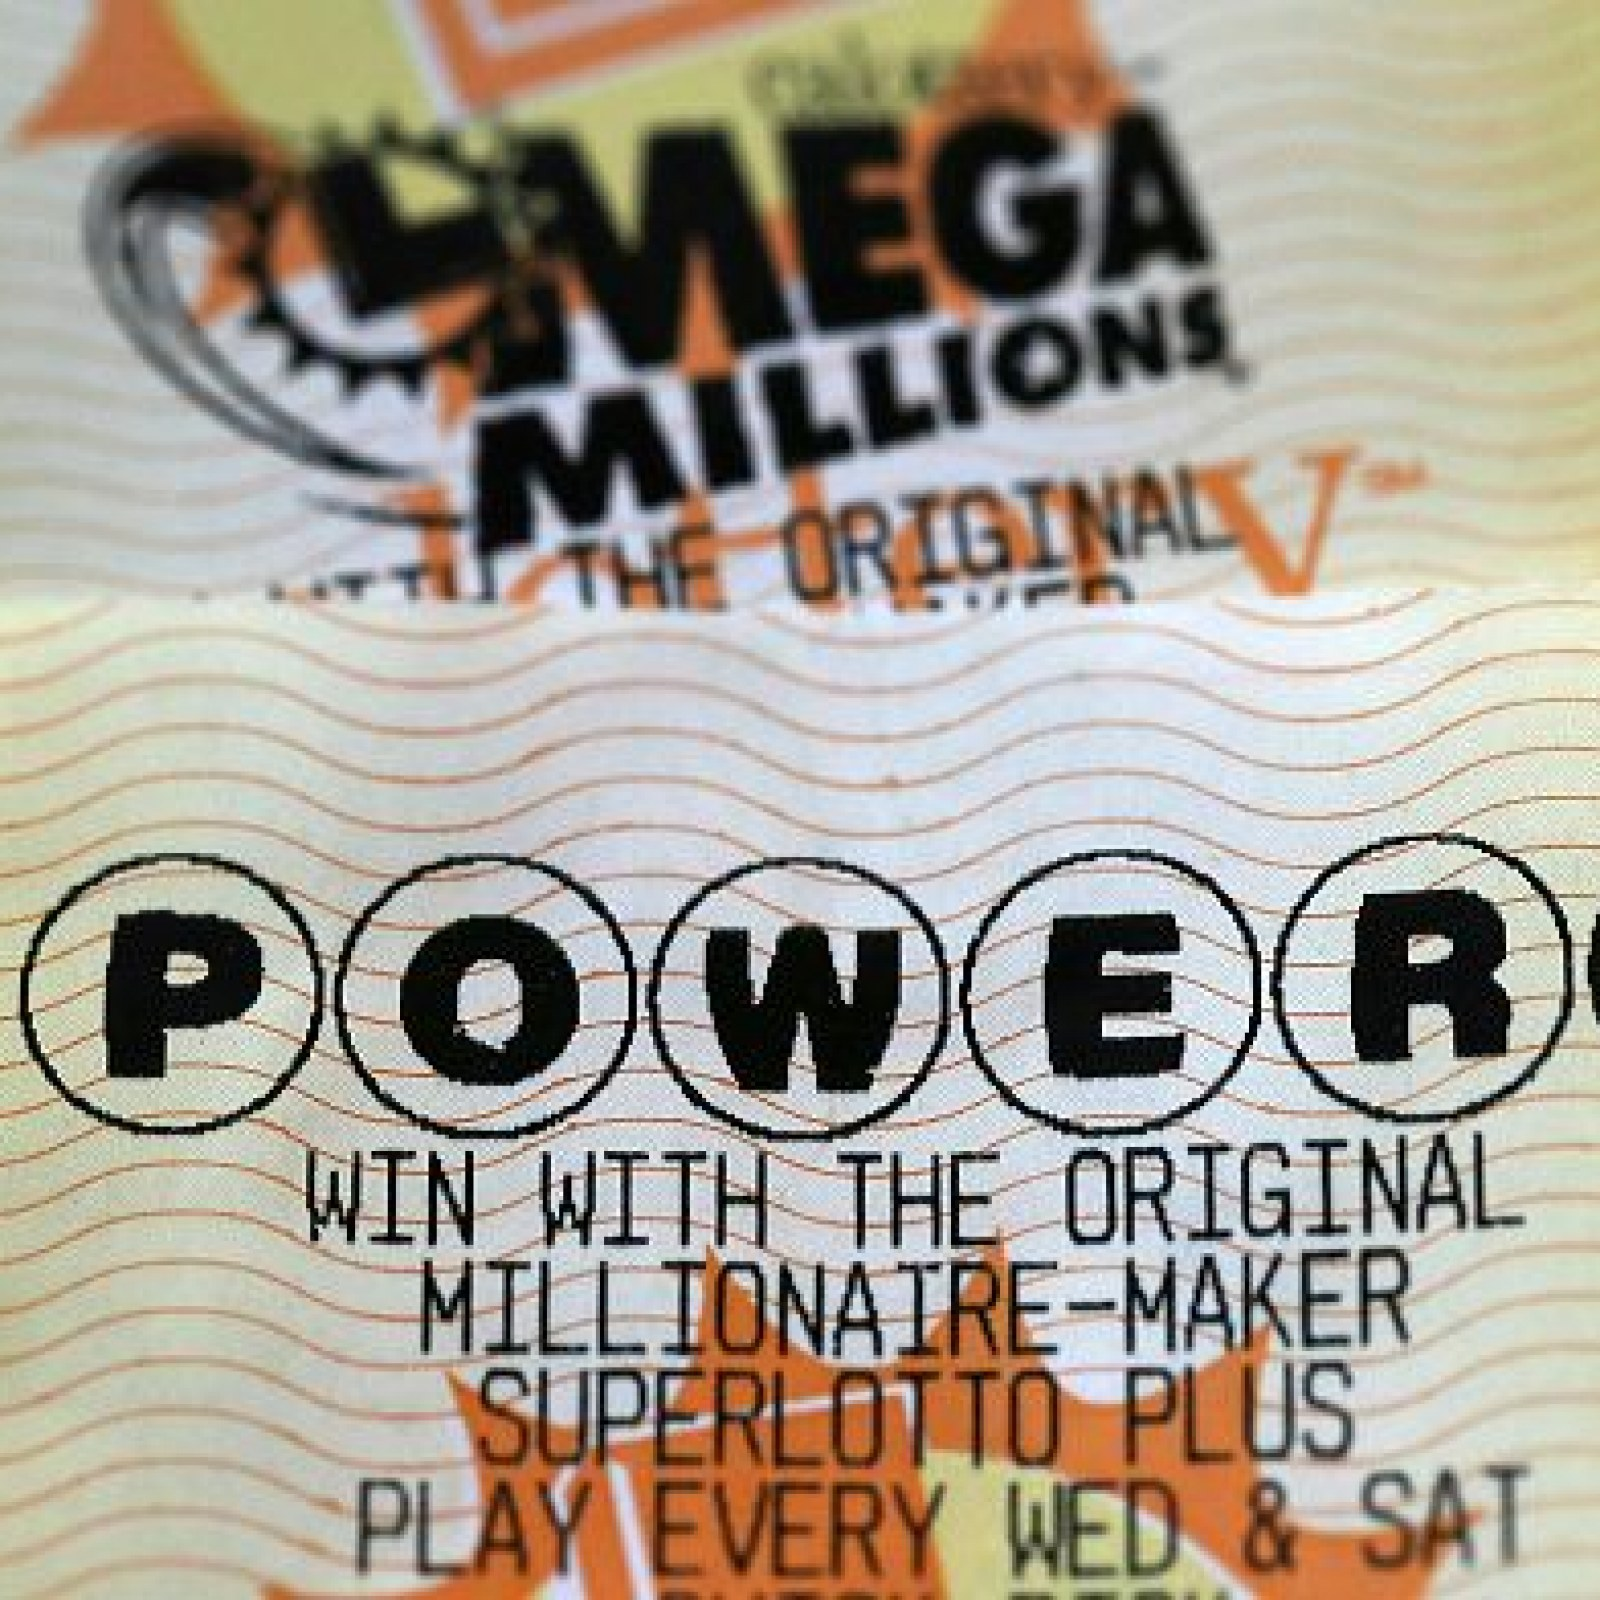 Powerball Jackpot Numbers Results For 12 8 18 Did Anyone Win The